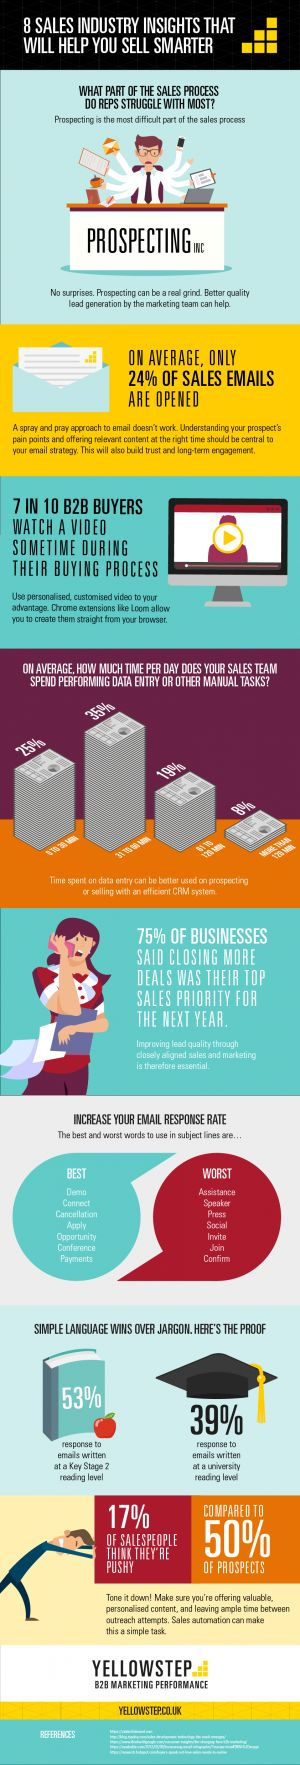 8 Sales Industry Insights That Will Help You Sell Smarter